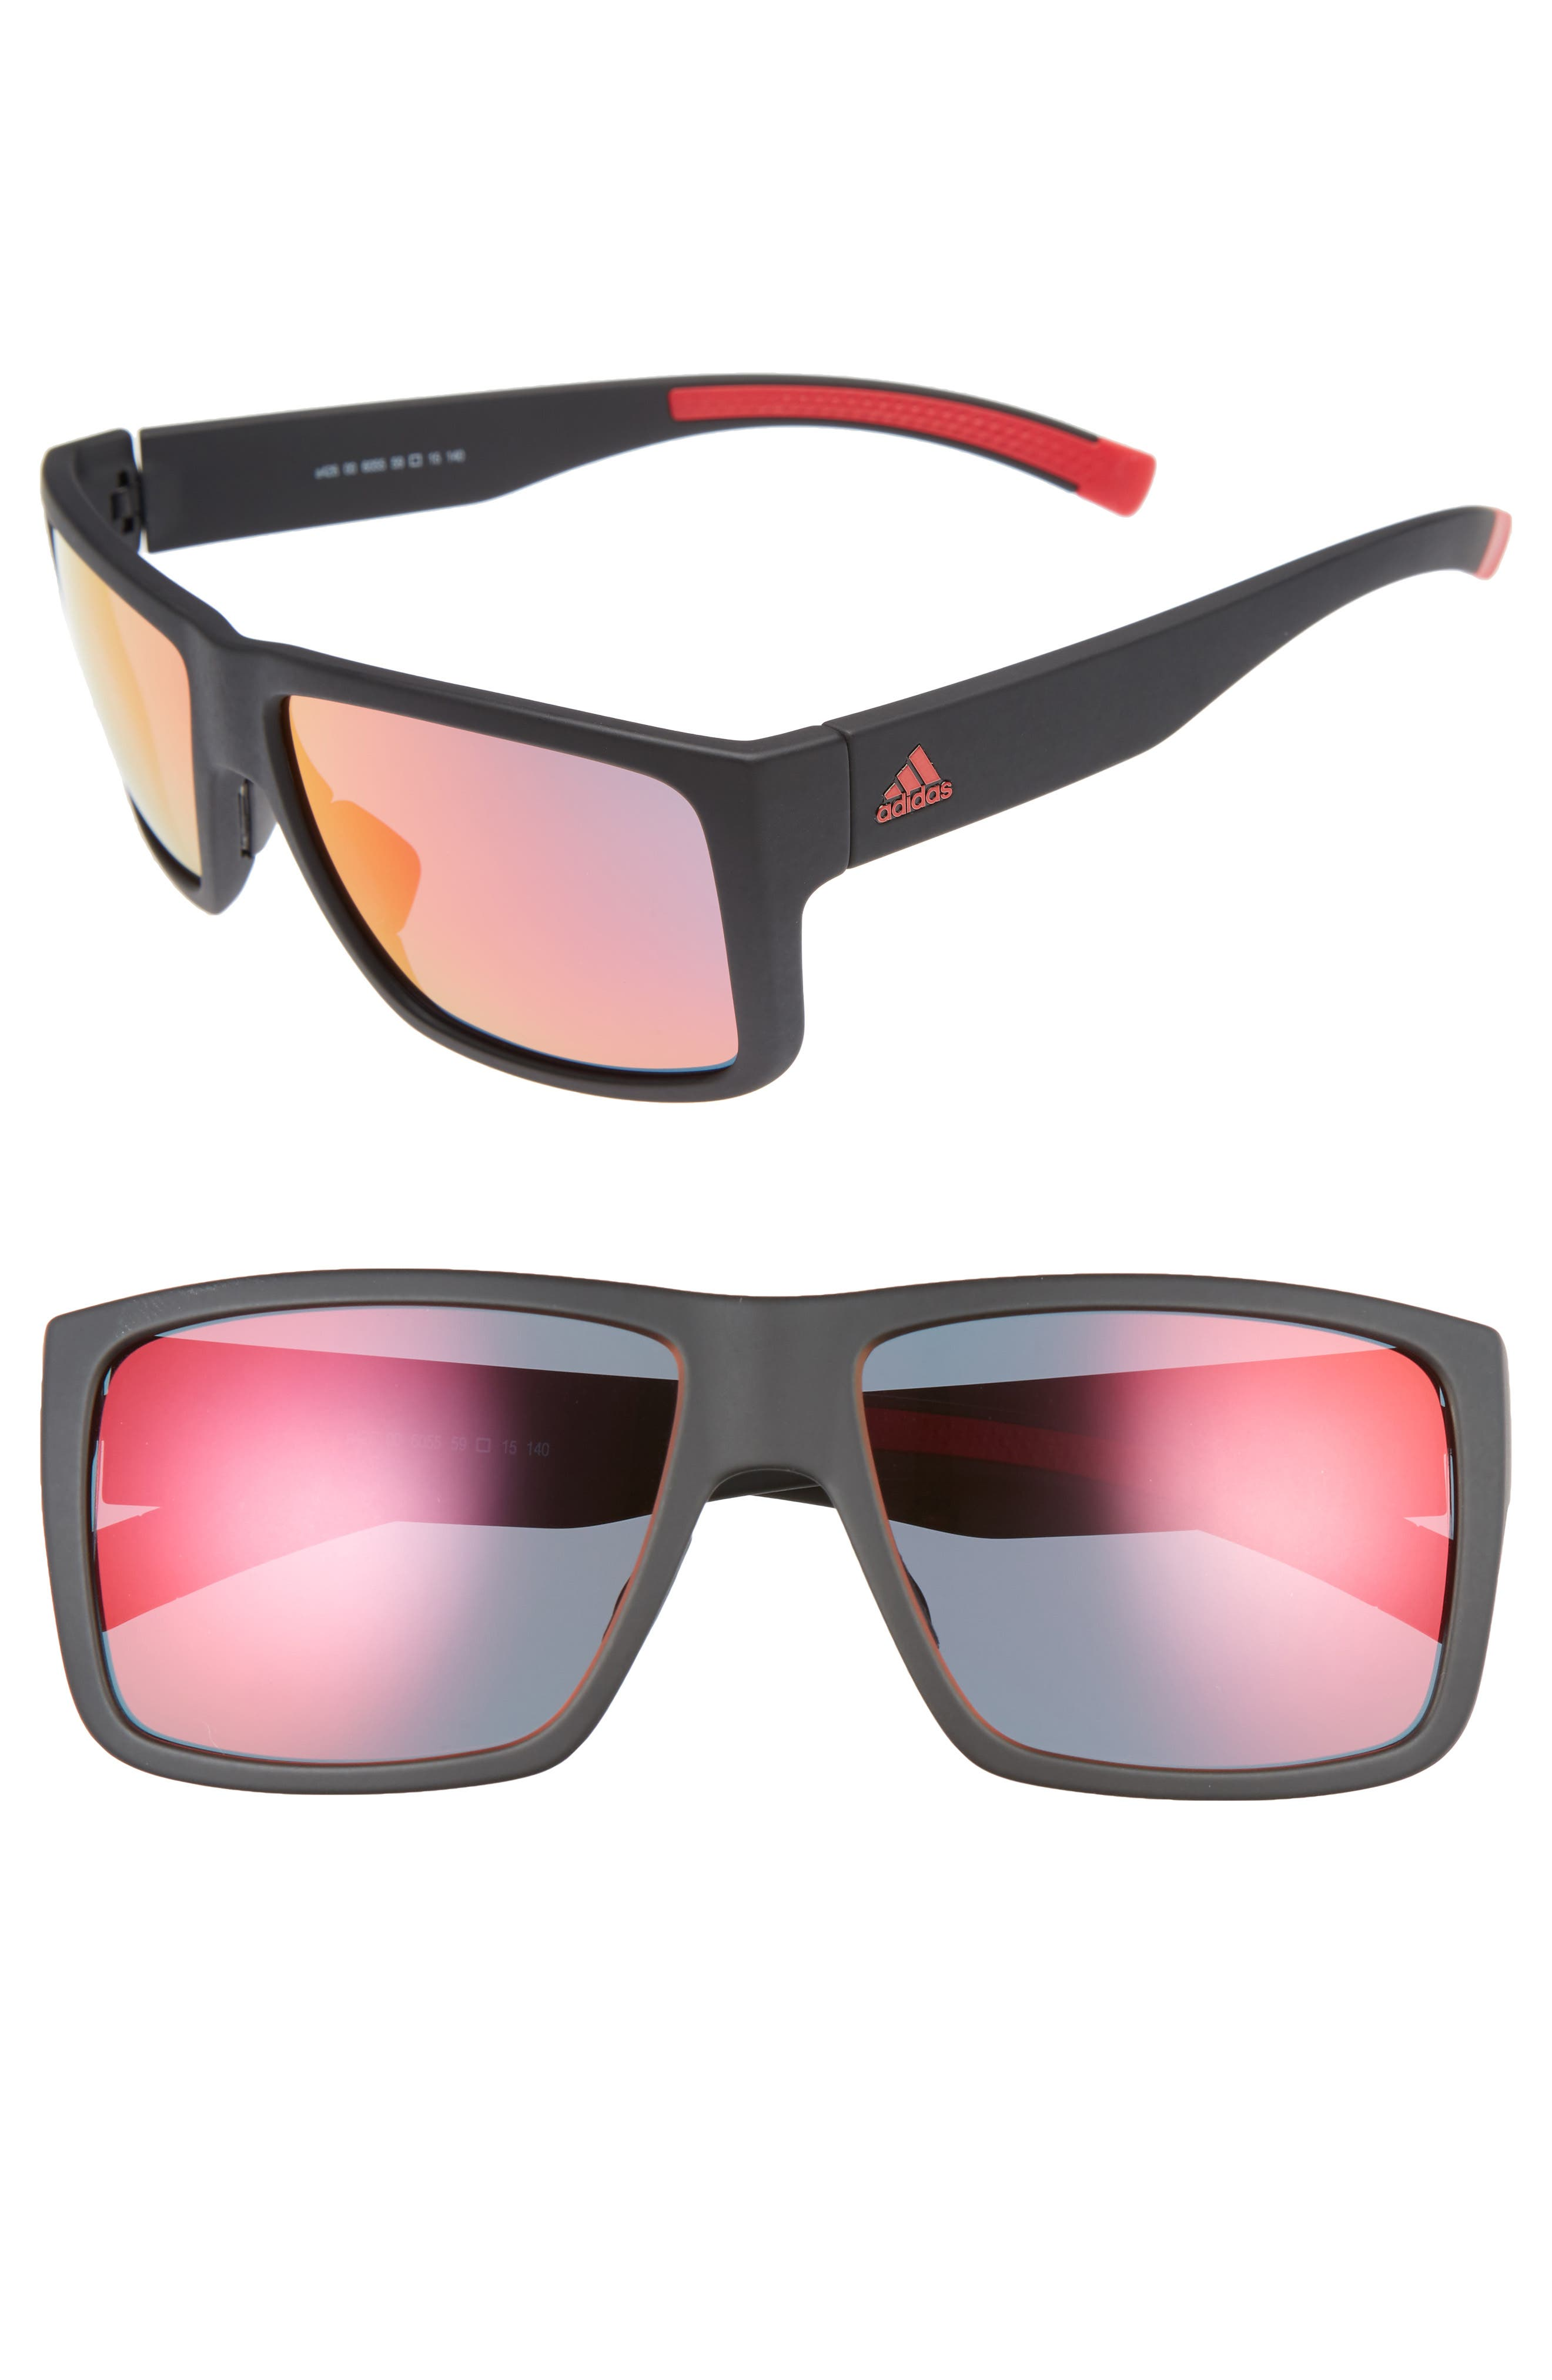 ADIDAS Matic 59mm Sunglasses, Main, color, BLACK MATTE/ RED MIRROR